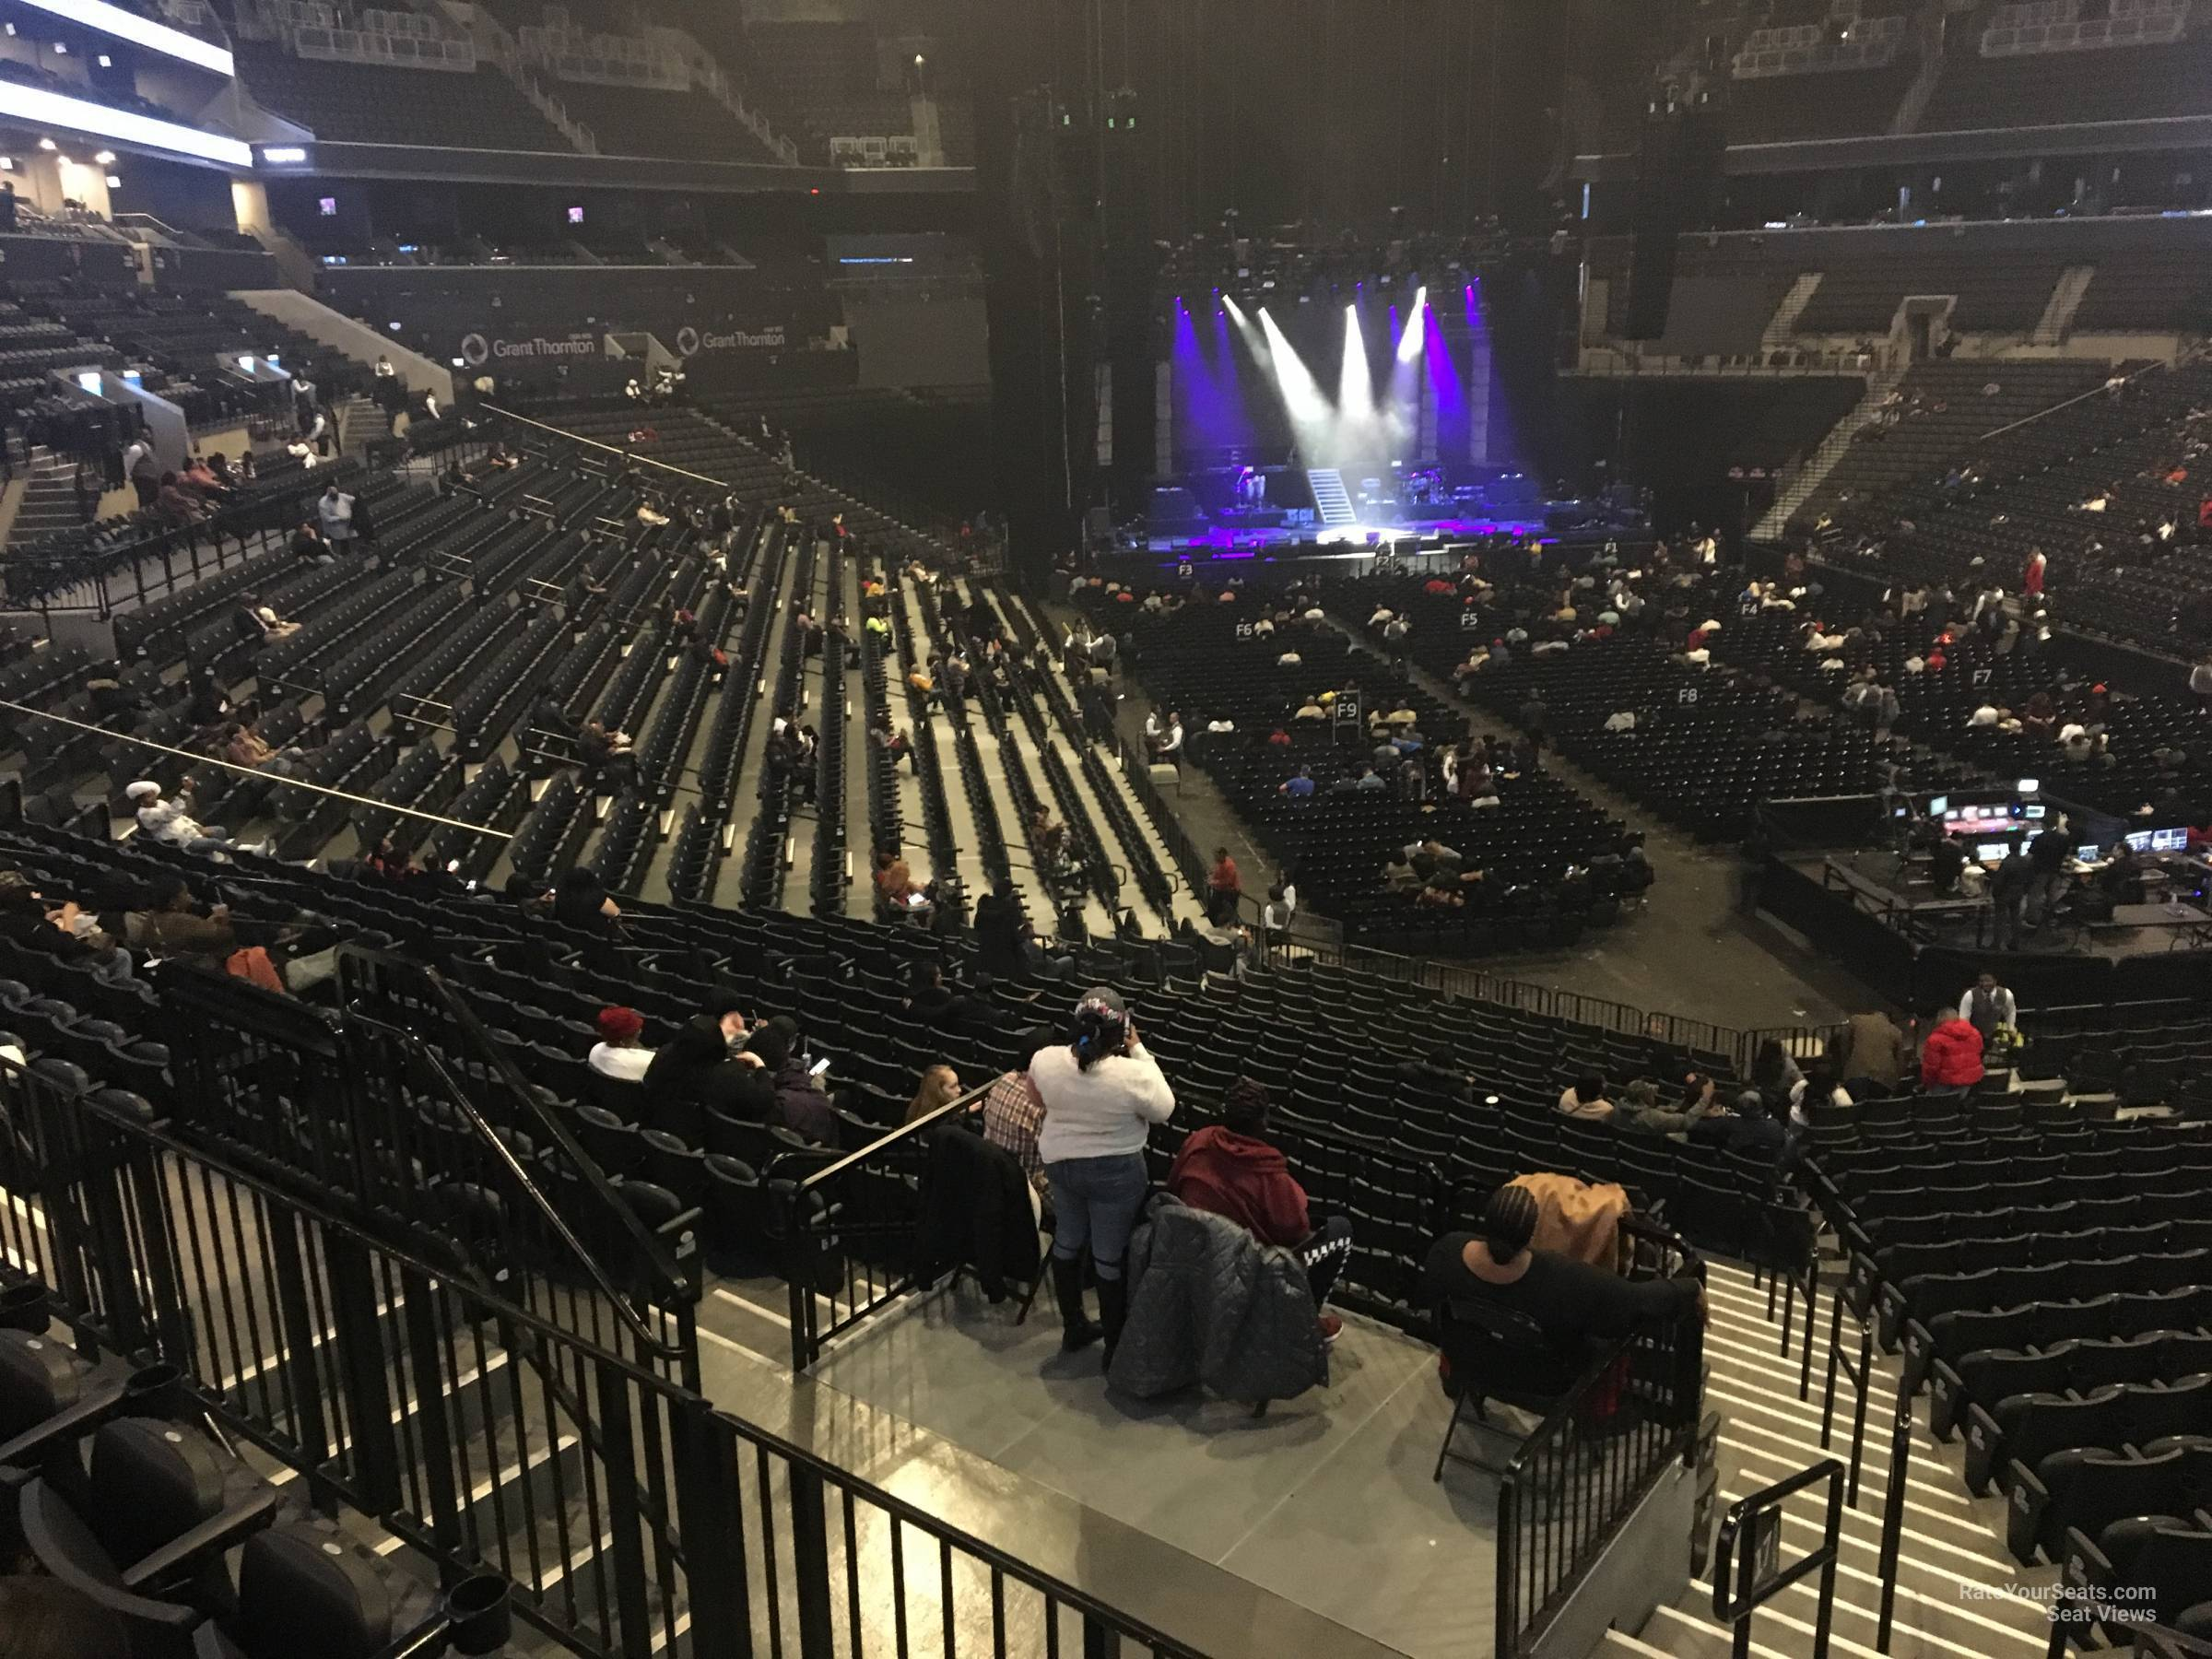 Barclays Center Section 118 Concert Seating Rateyourseatscom